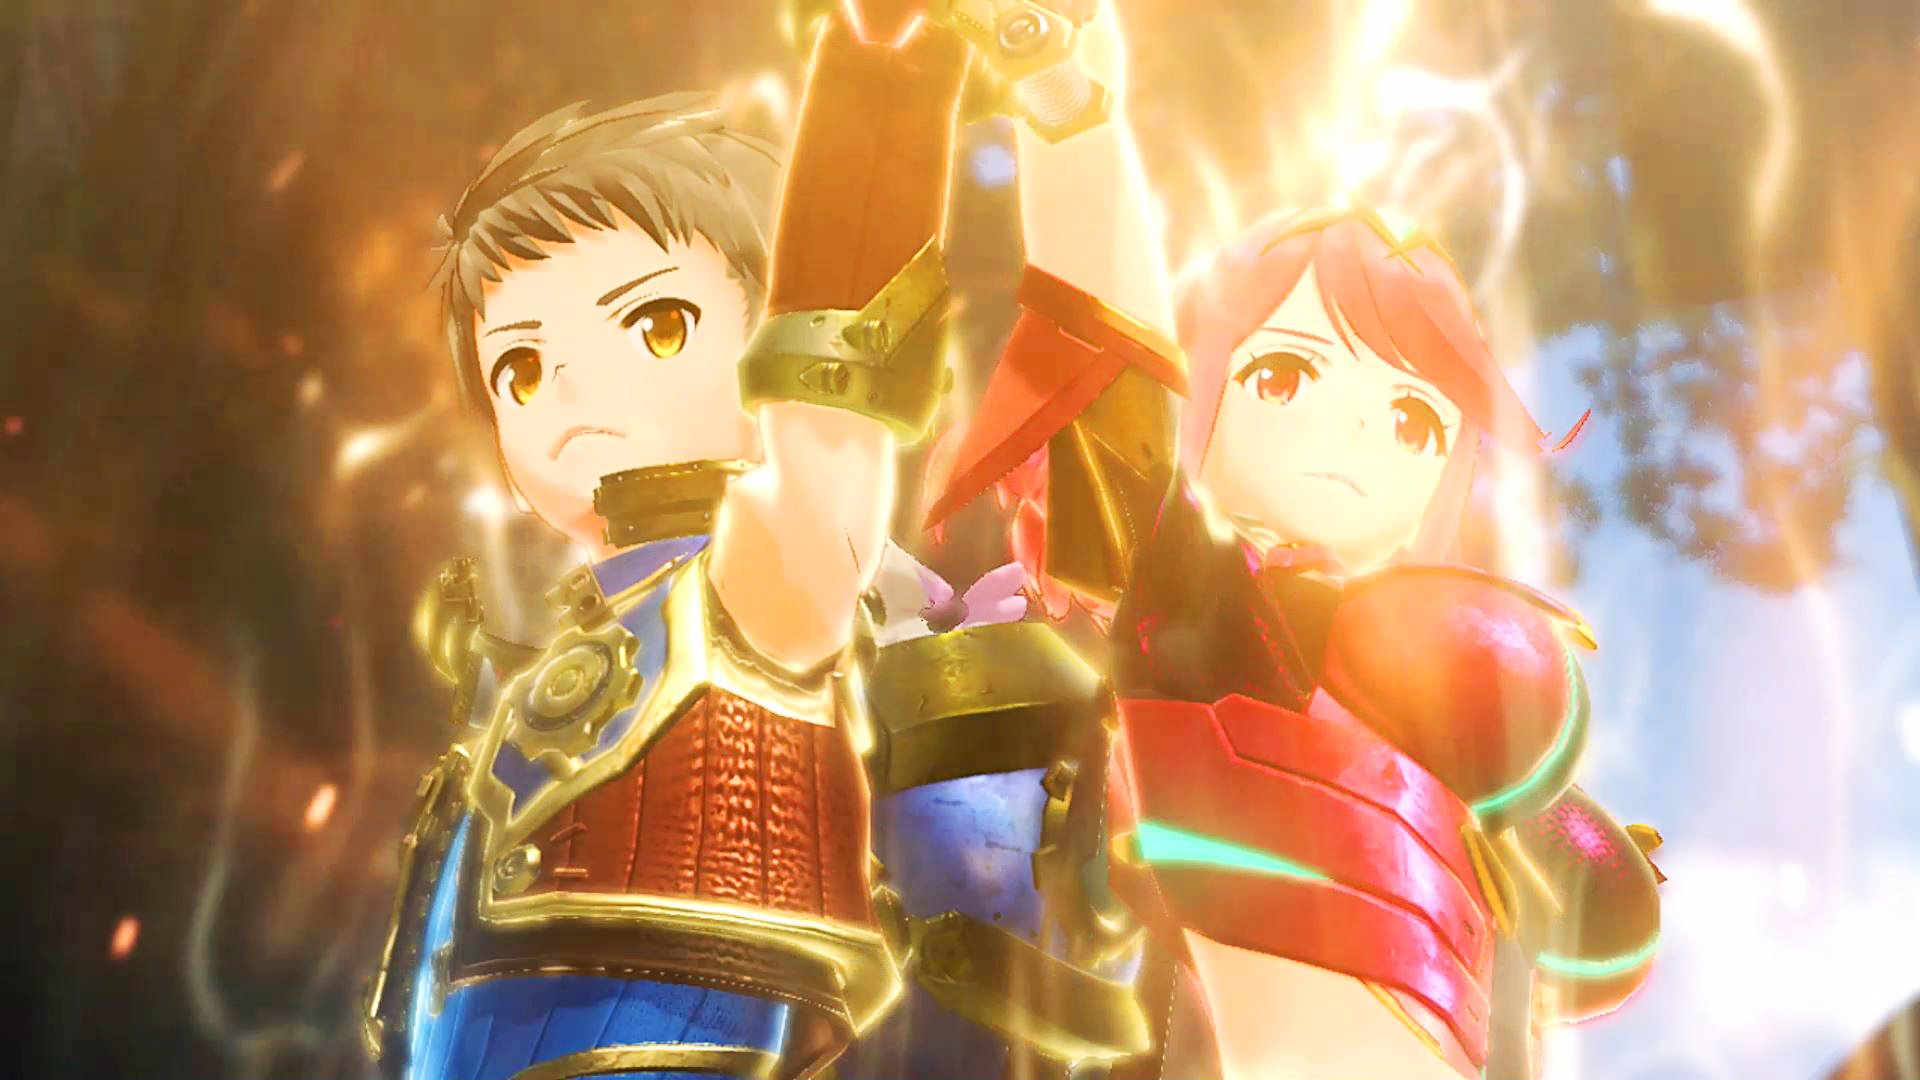 Is Xenoblade Chronicles 2 Hurt By Its Anime Aesthetic?